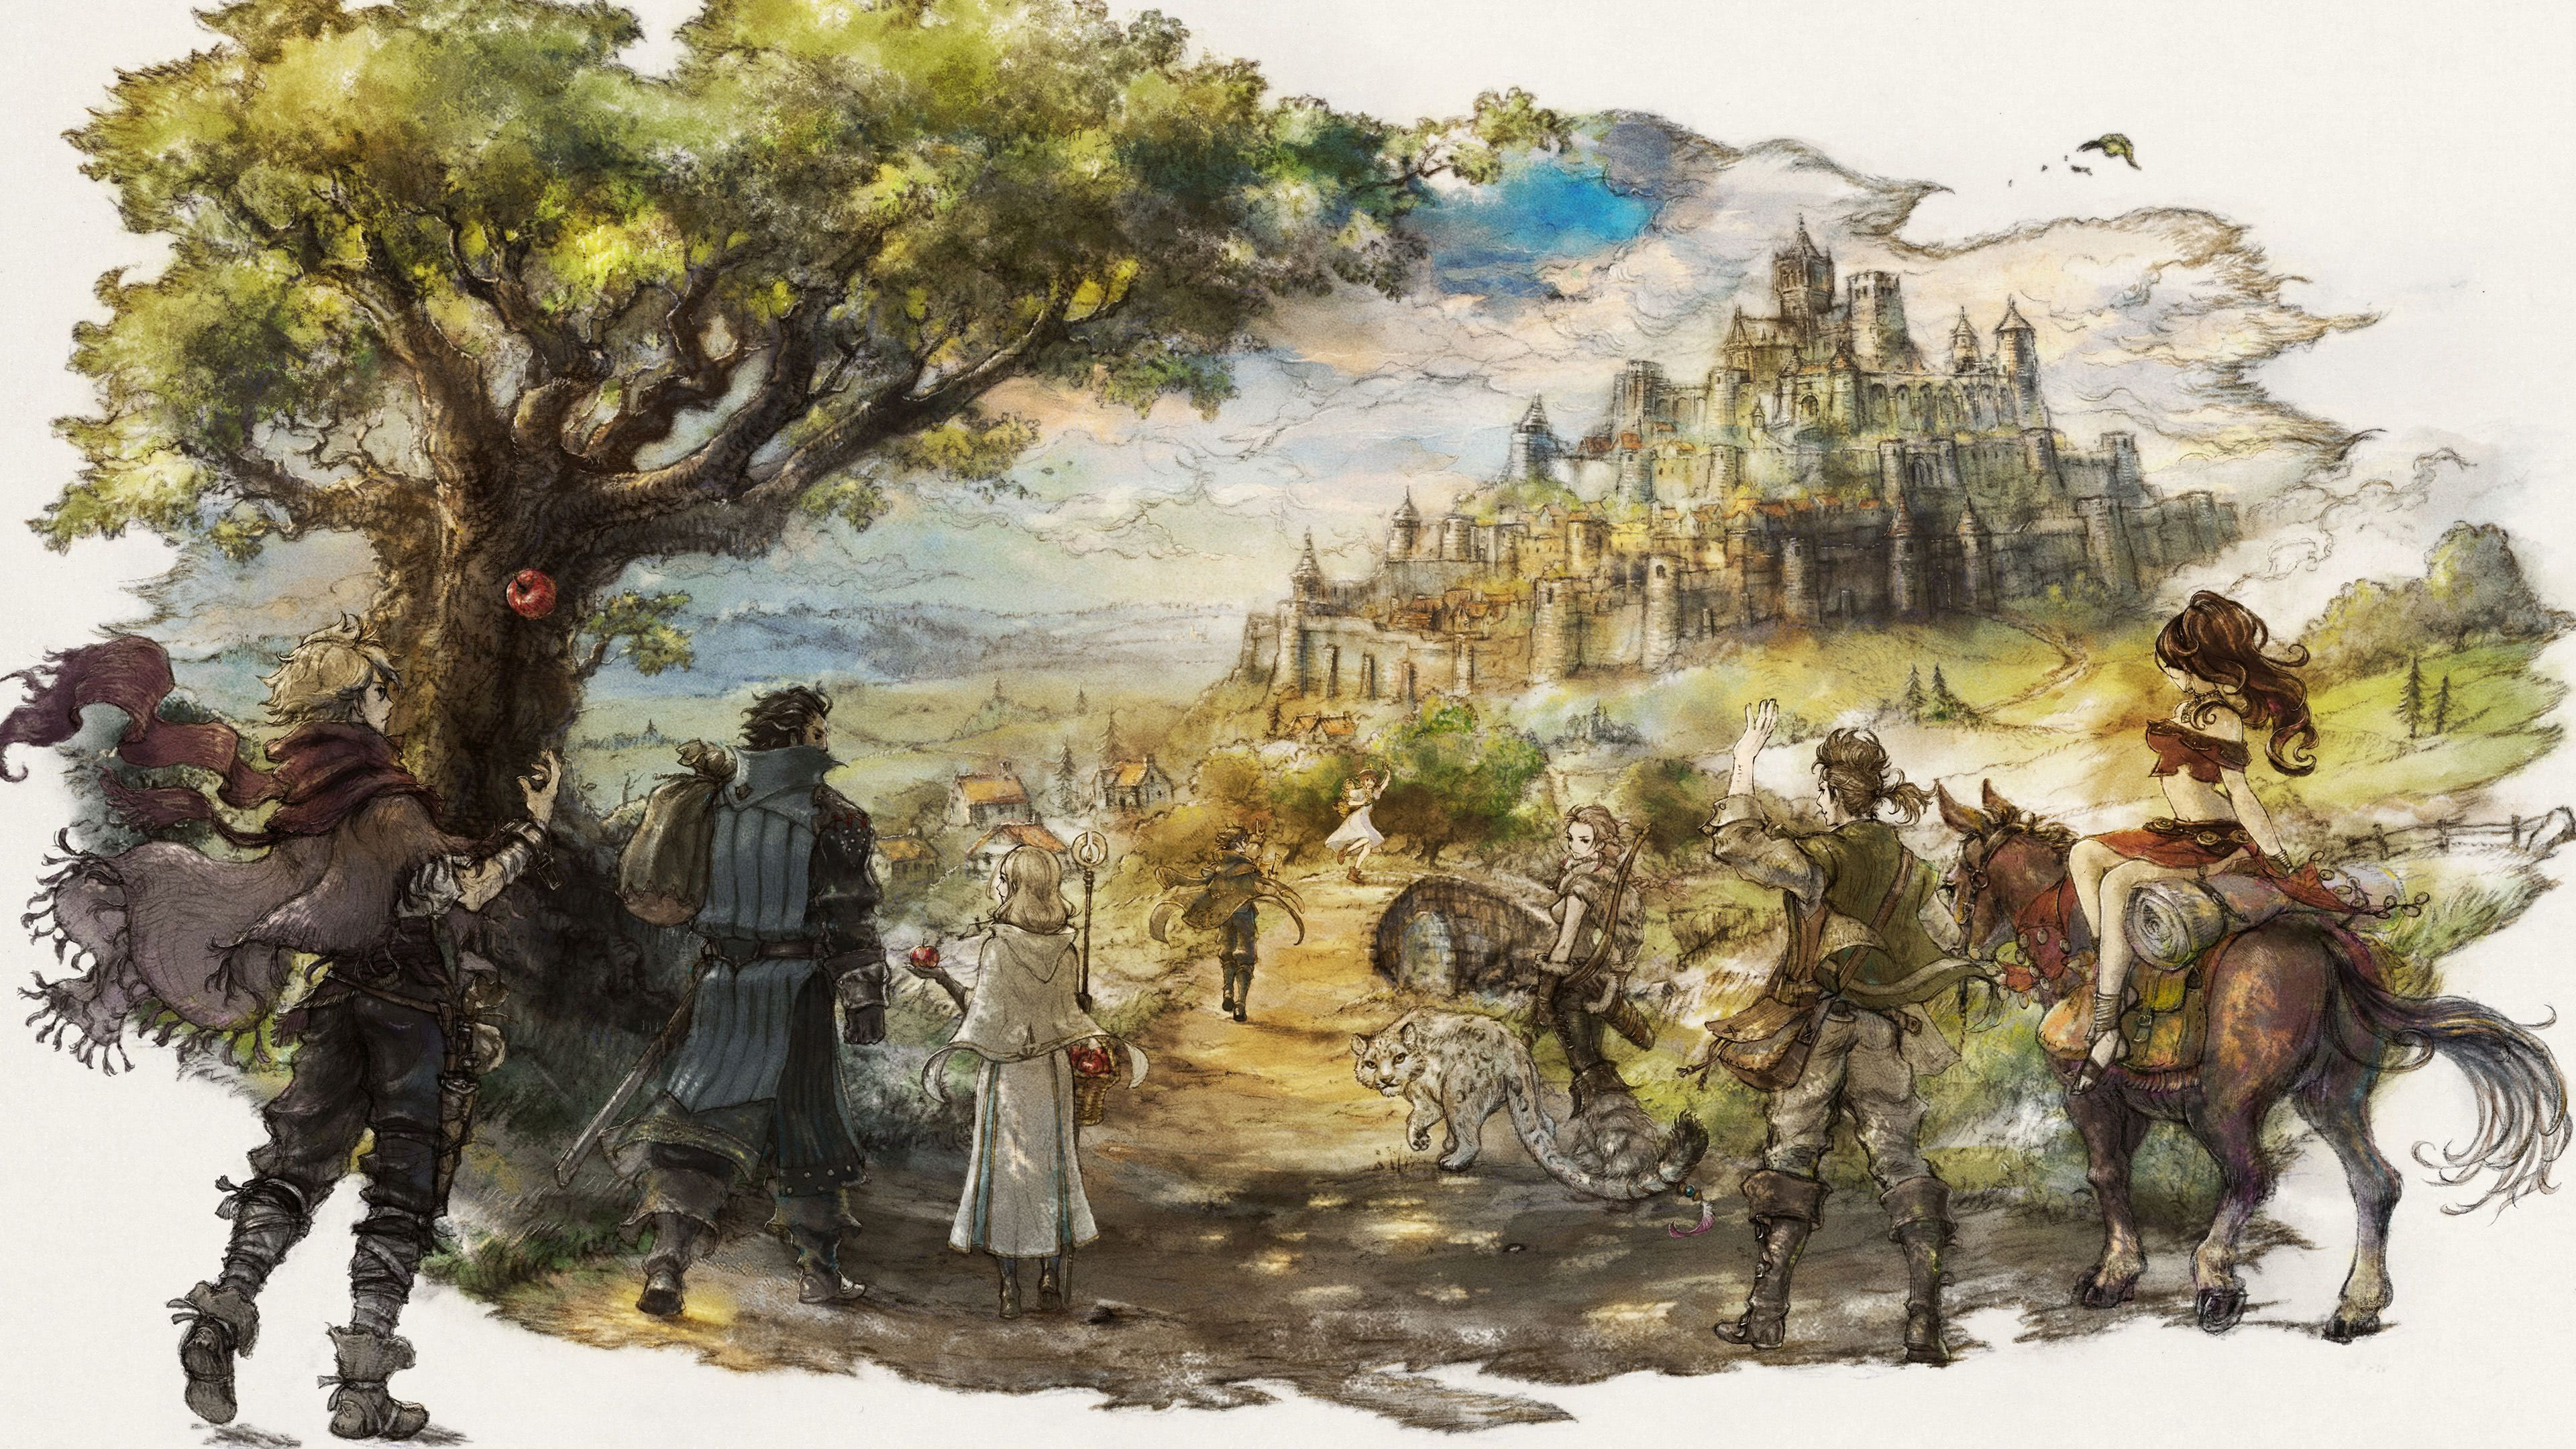 Octopath Traveler News - Trailers and More...